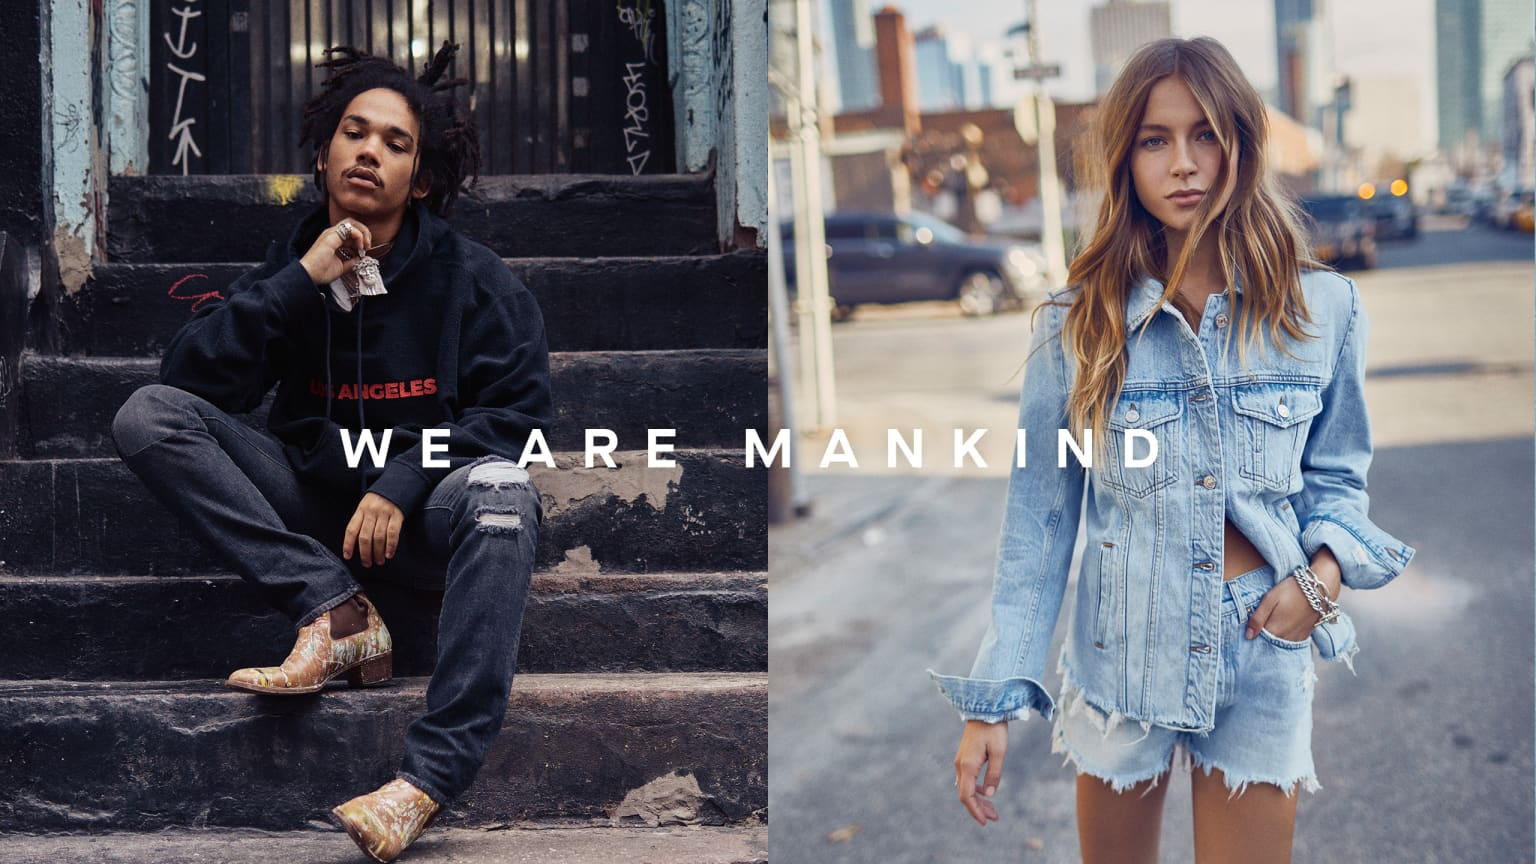 WE ARE MANKIND